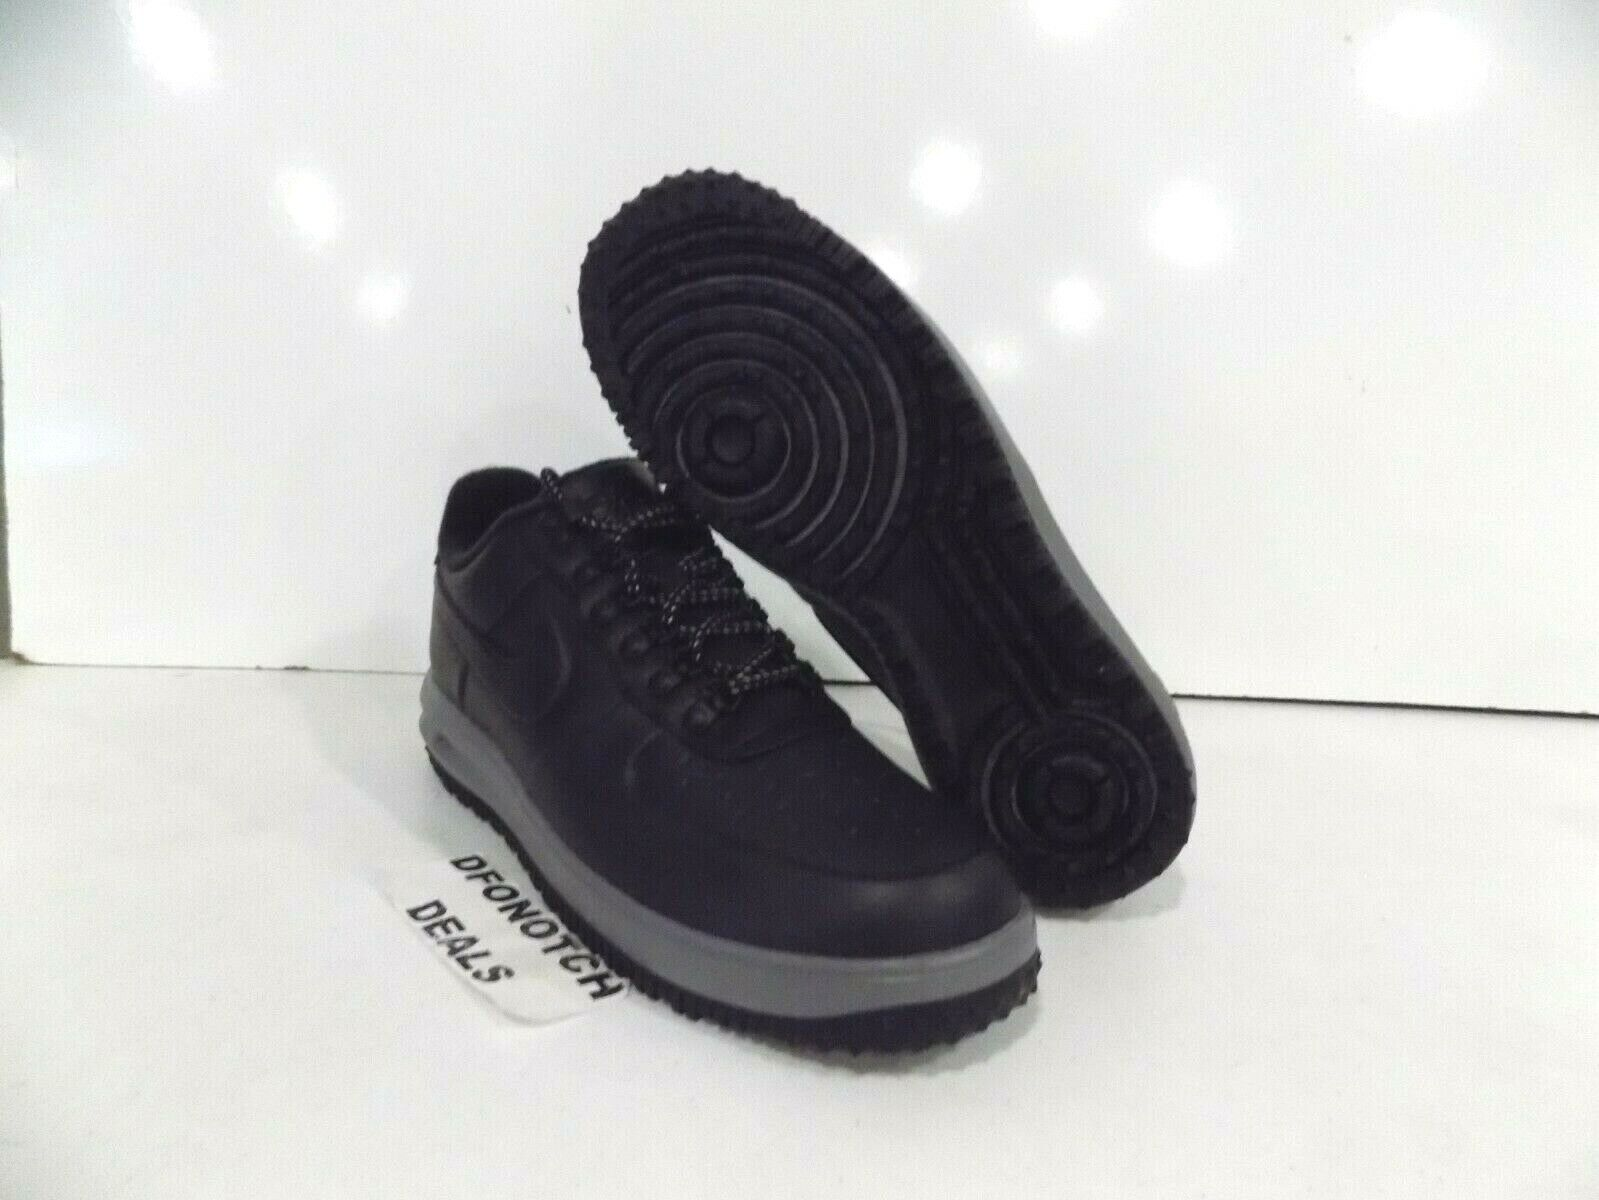 Nike Lunar Force 1 LF1 Duckboot Low Sz 11 12 Black Grey AA1125-004 NEW  140